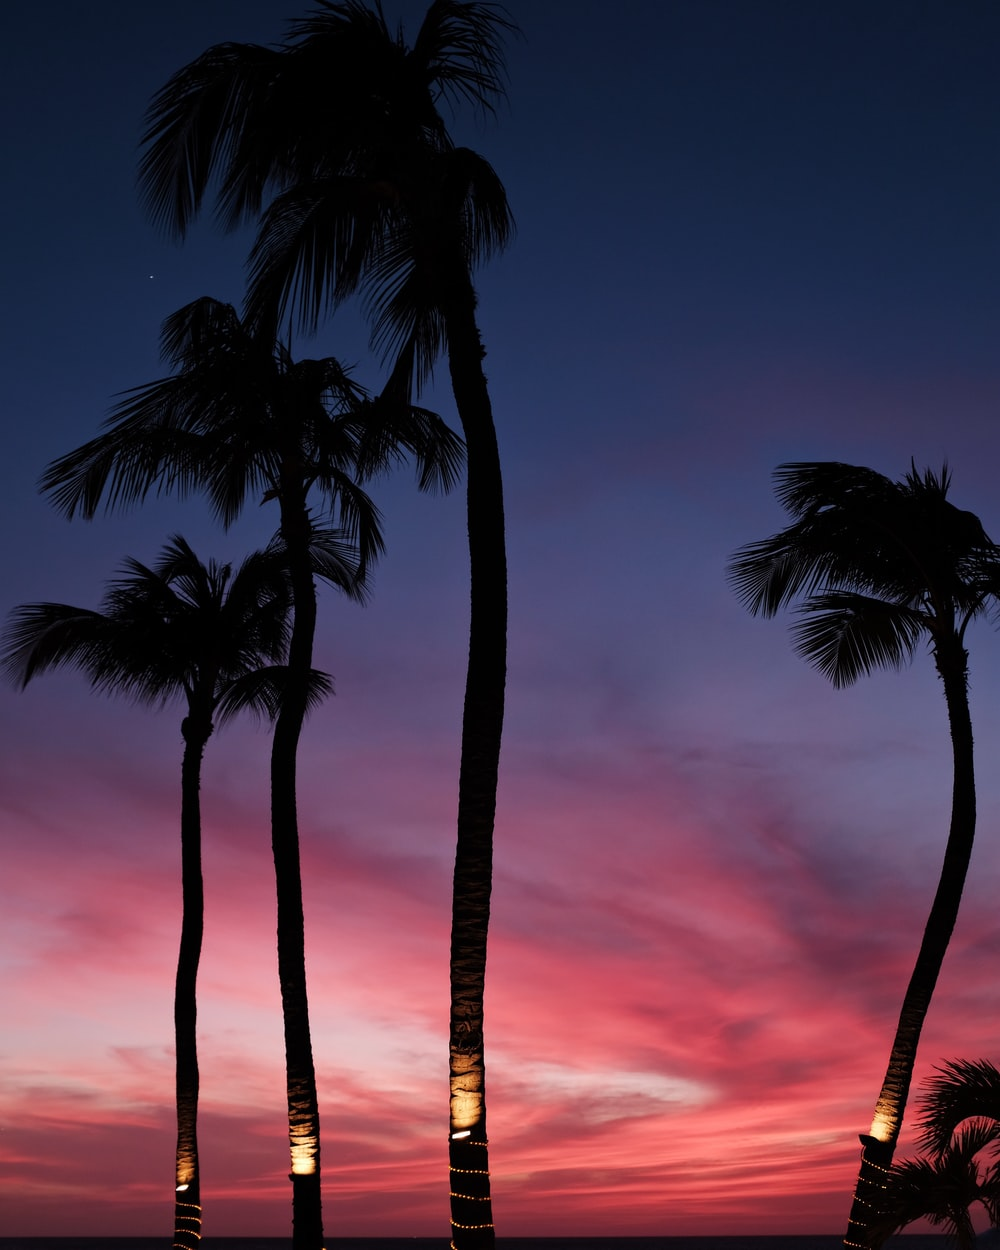 palm trees and a sunset in Aruba